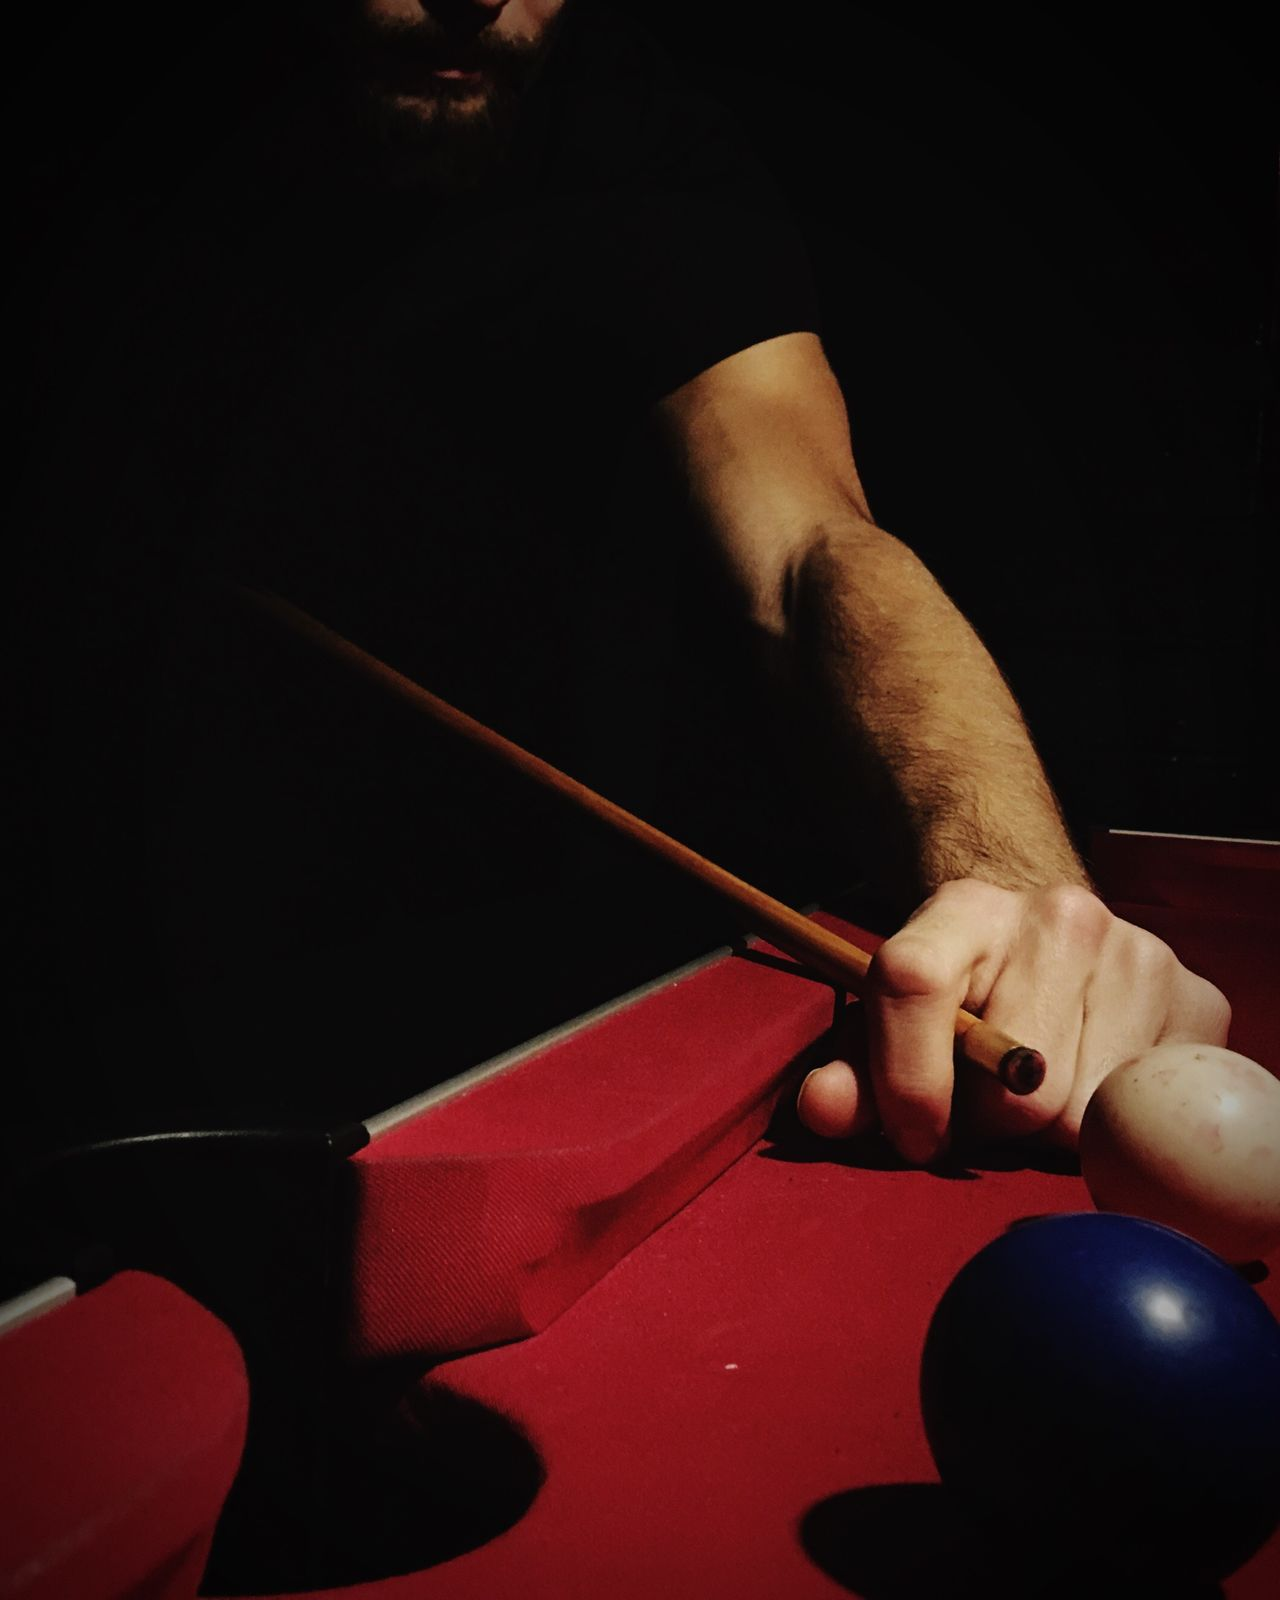 Human Hand Pool Pool Cue Playing Pool Table Pool Ball Man Evening Fun Sexy Complicity Happy My Man Red Evening Light Play Pool Time Pub Night Montpellier